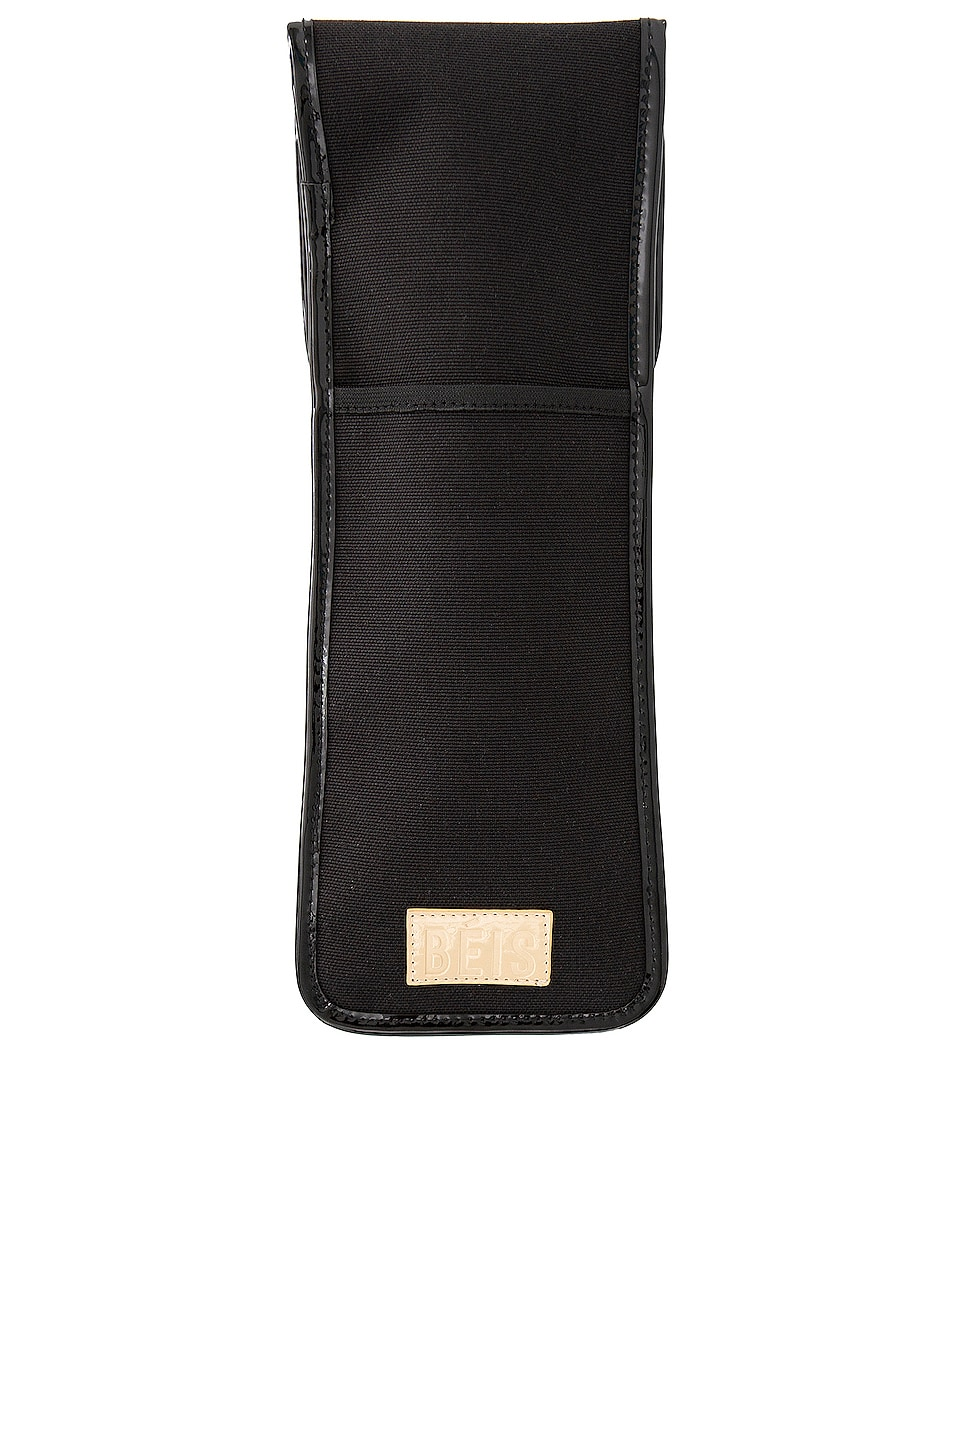 BEIS Flat Iron Cover in Black